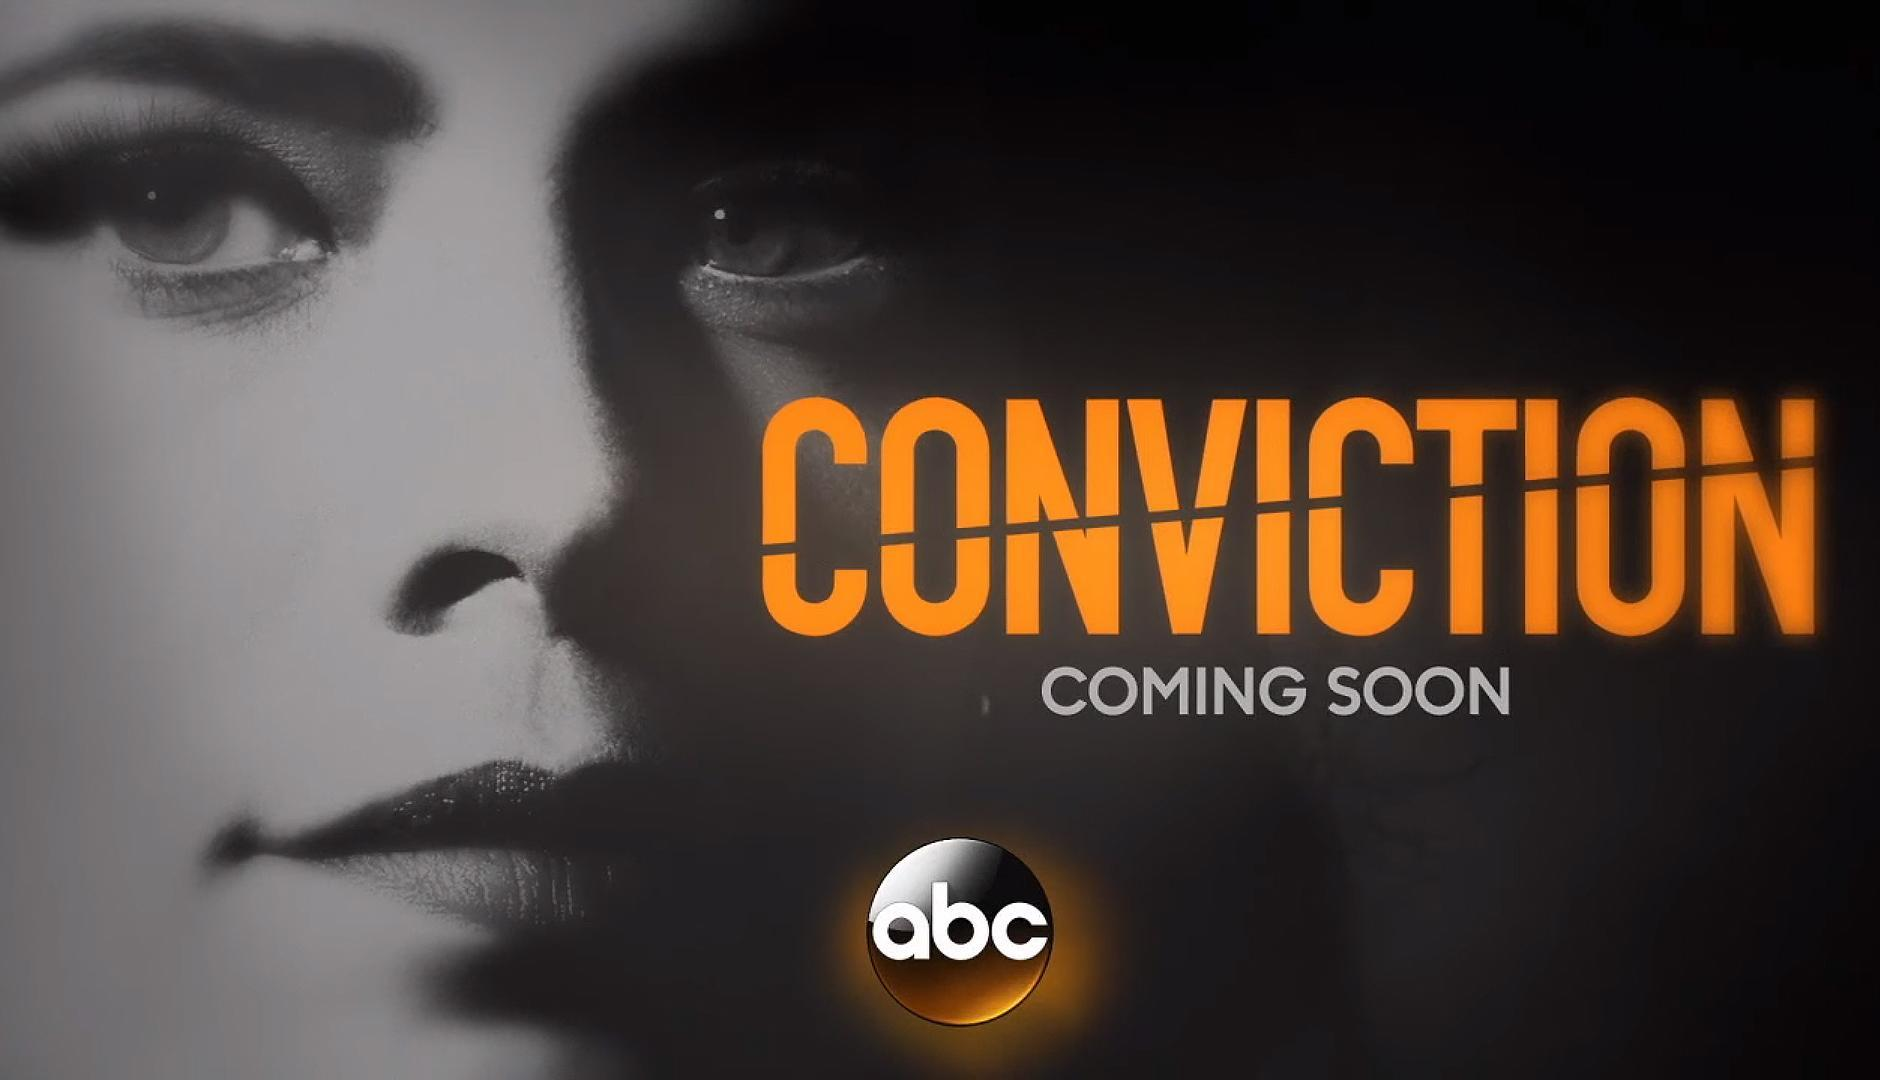 conviction_tv_series-540948322-large.jpg (1880×1080)